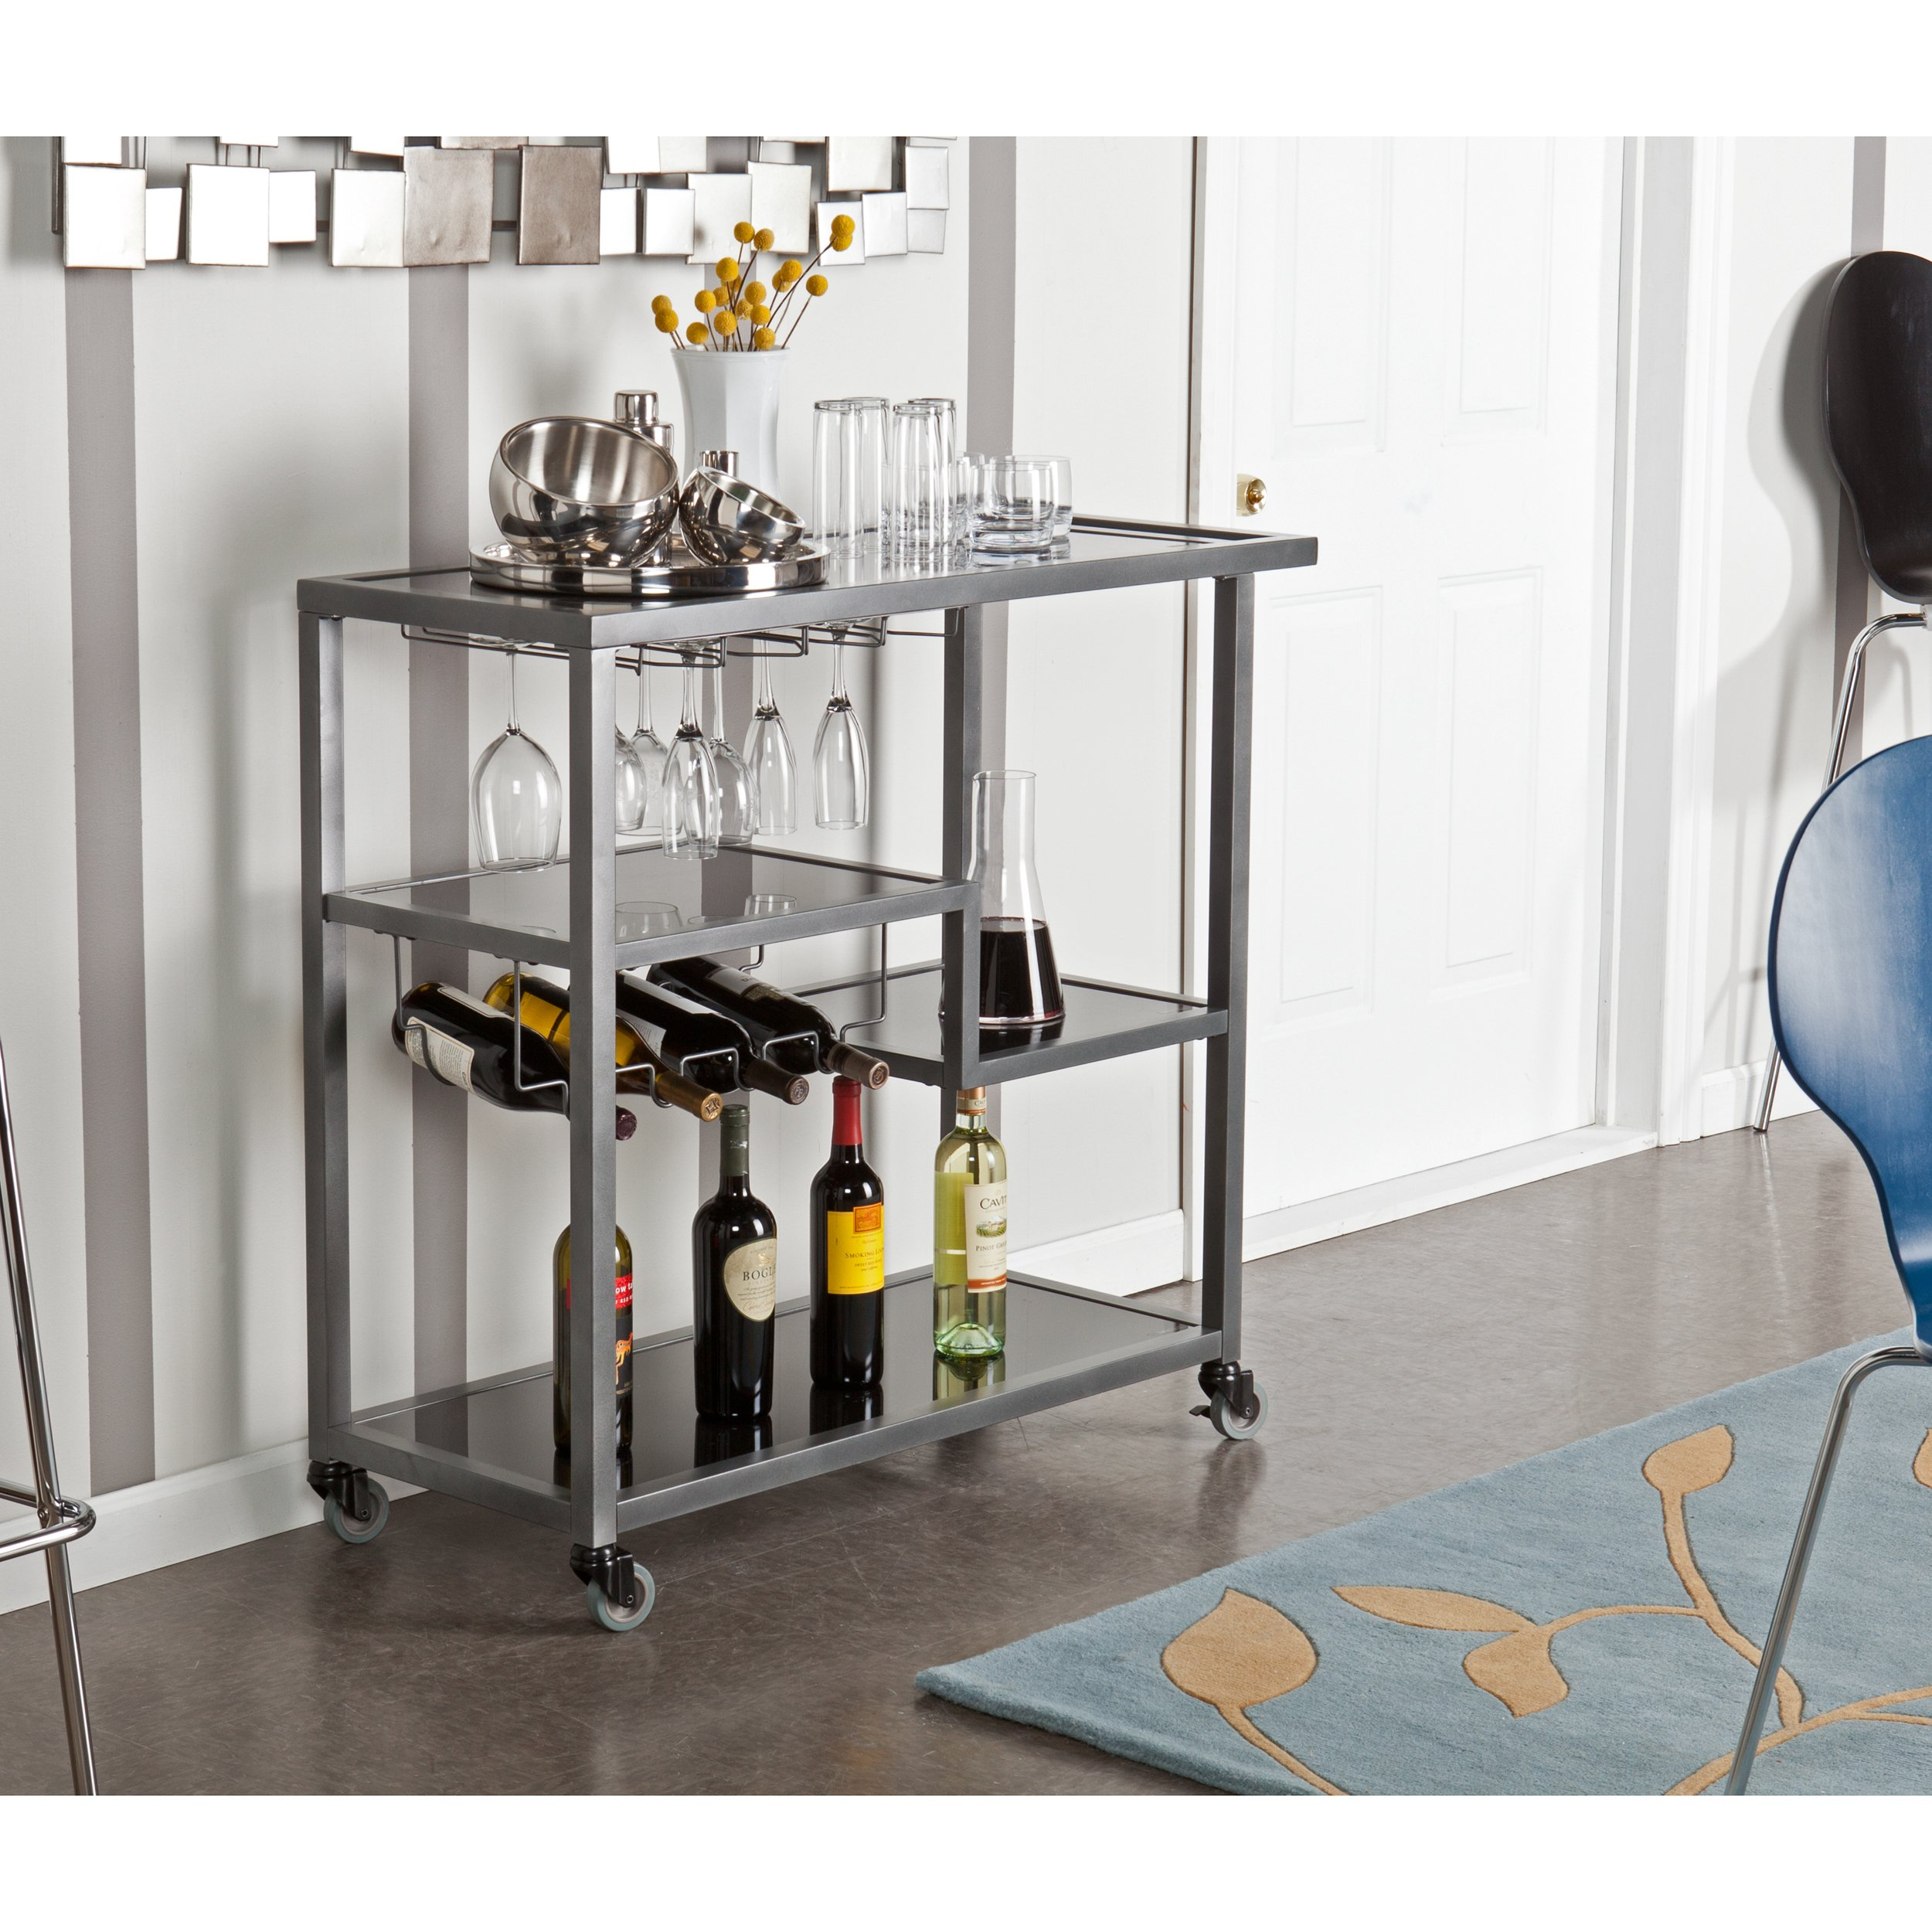 Zephs Rolling Bar Cart - Locking Castor Wheels - Gunmetal Finish w/Black Tempered Glass by Holly & Martin